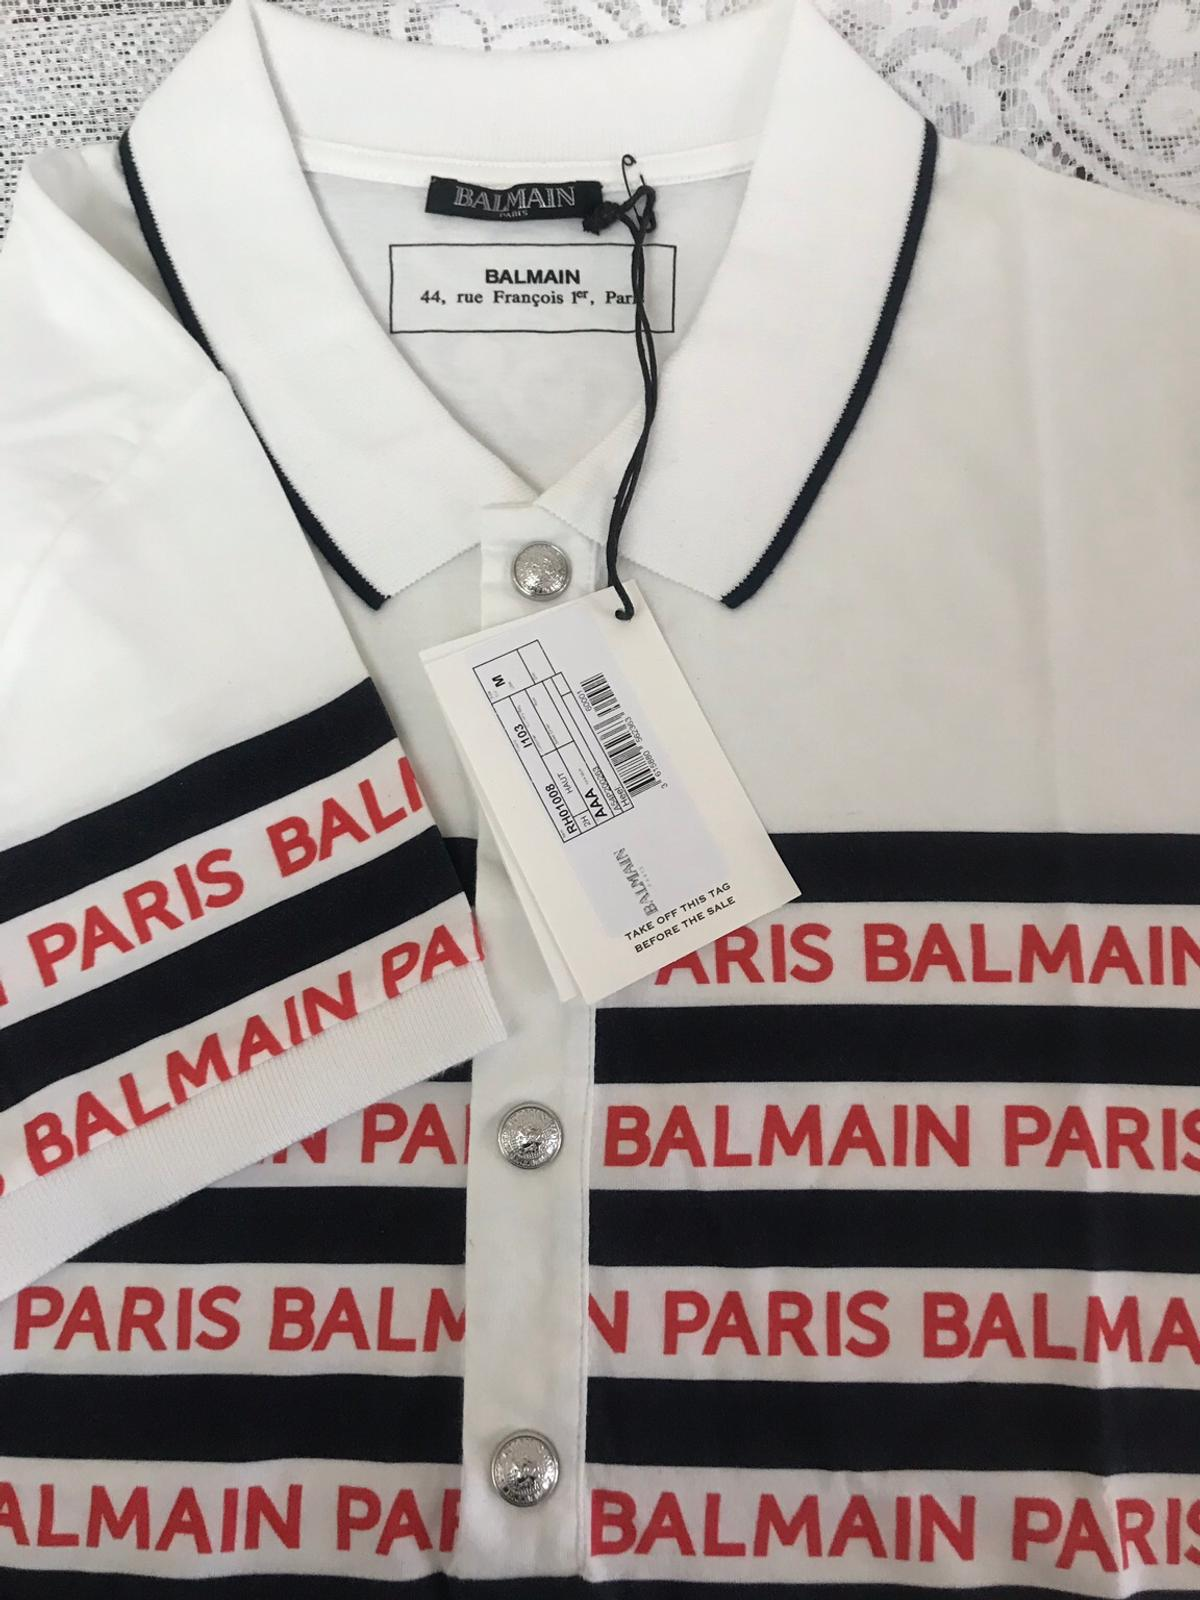 Brand new size M Balmain T Shirt  Never been worn still in packaging  All new brand new SS19 stock  I have plenty of Balmain stock for sale and great prices, Messege me